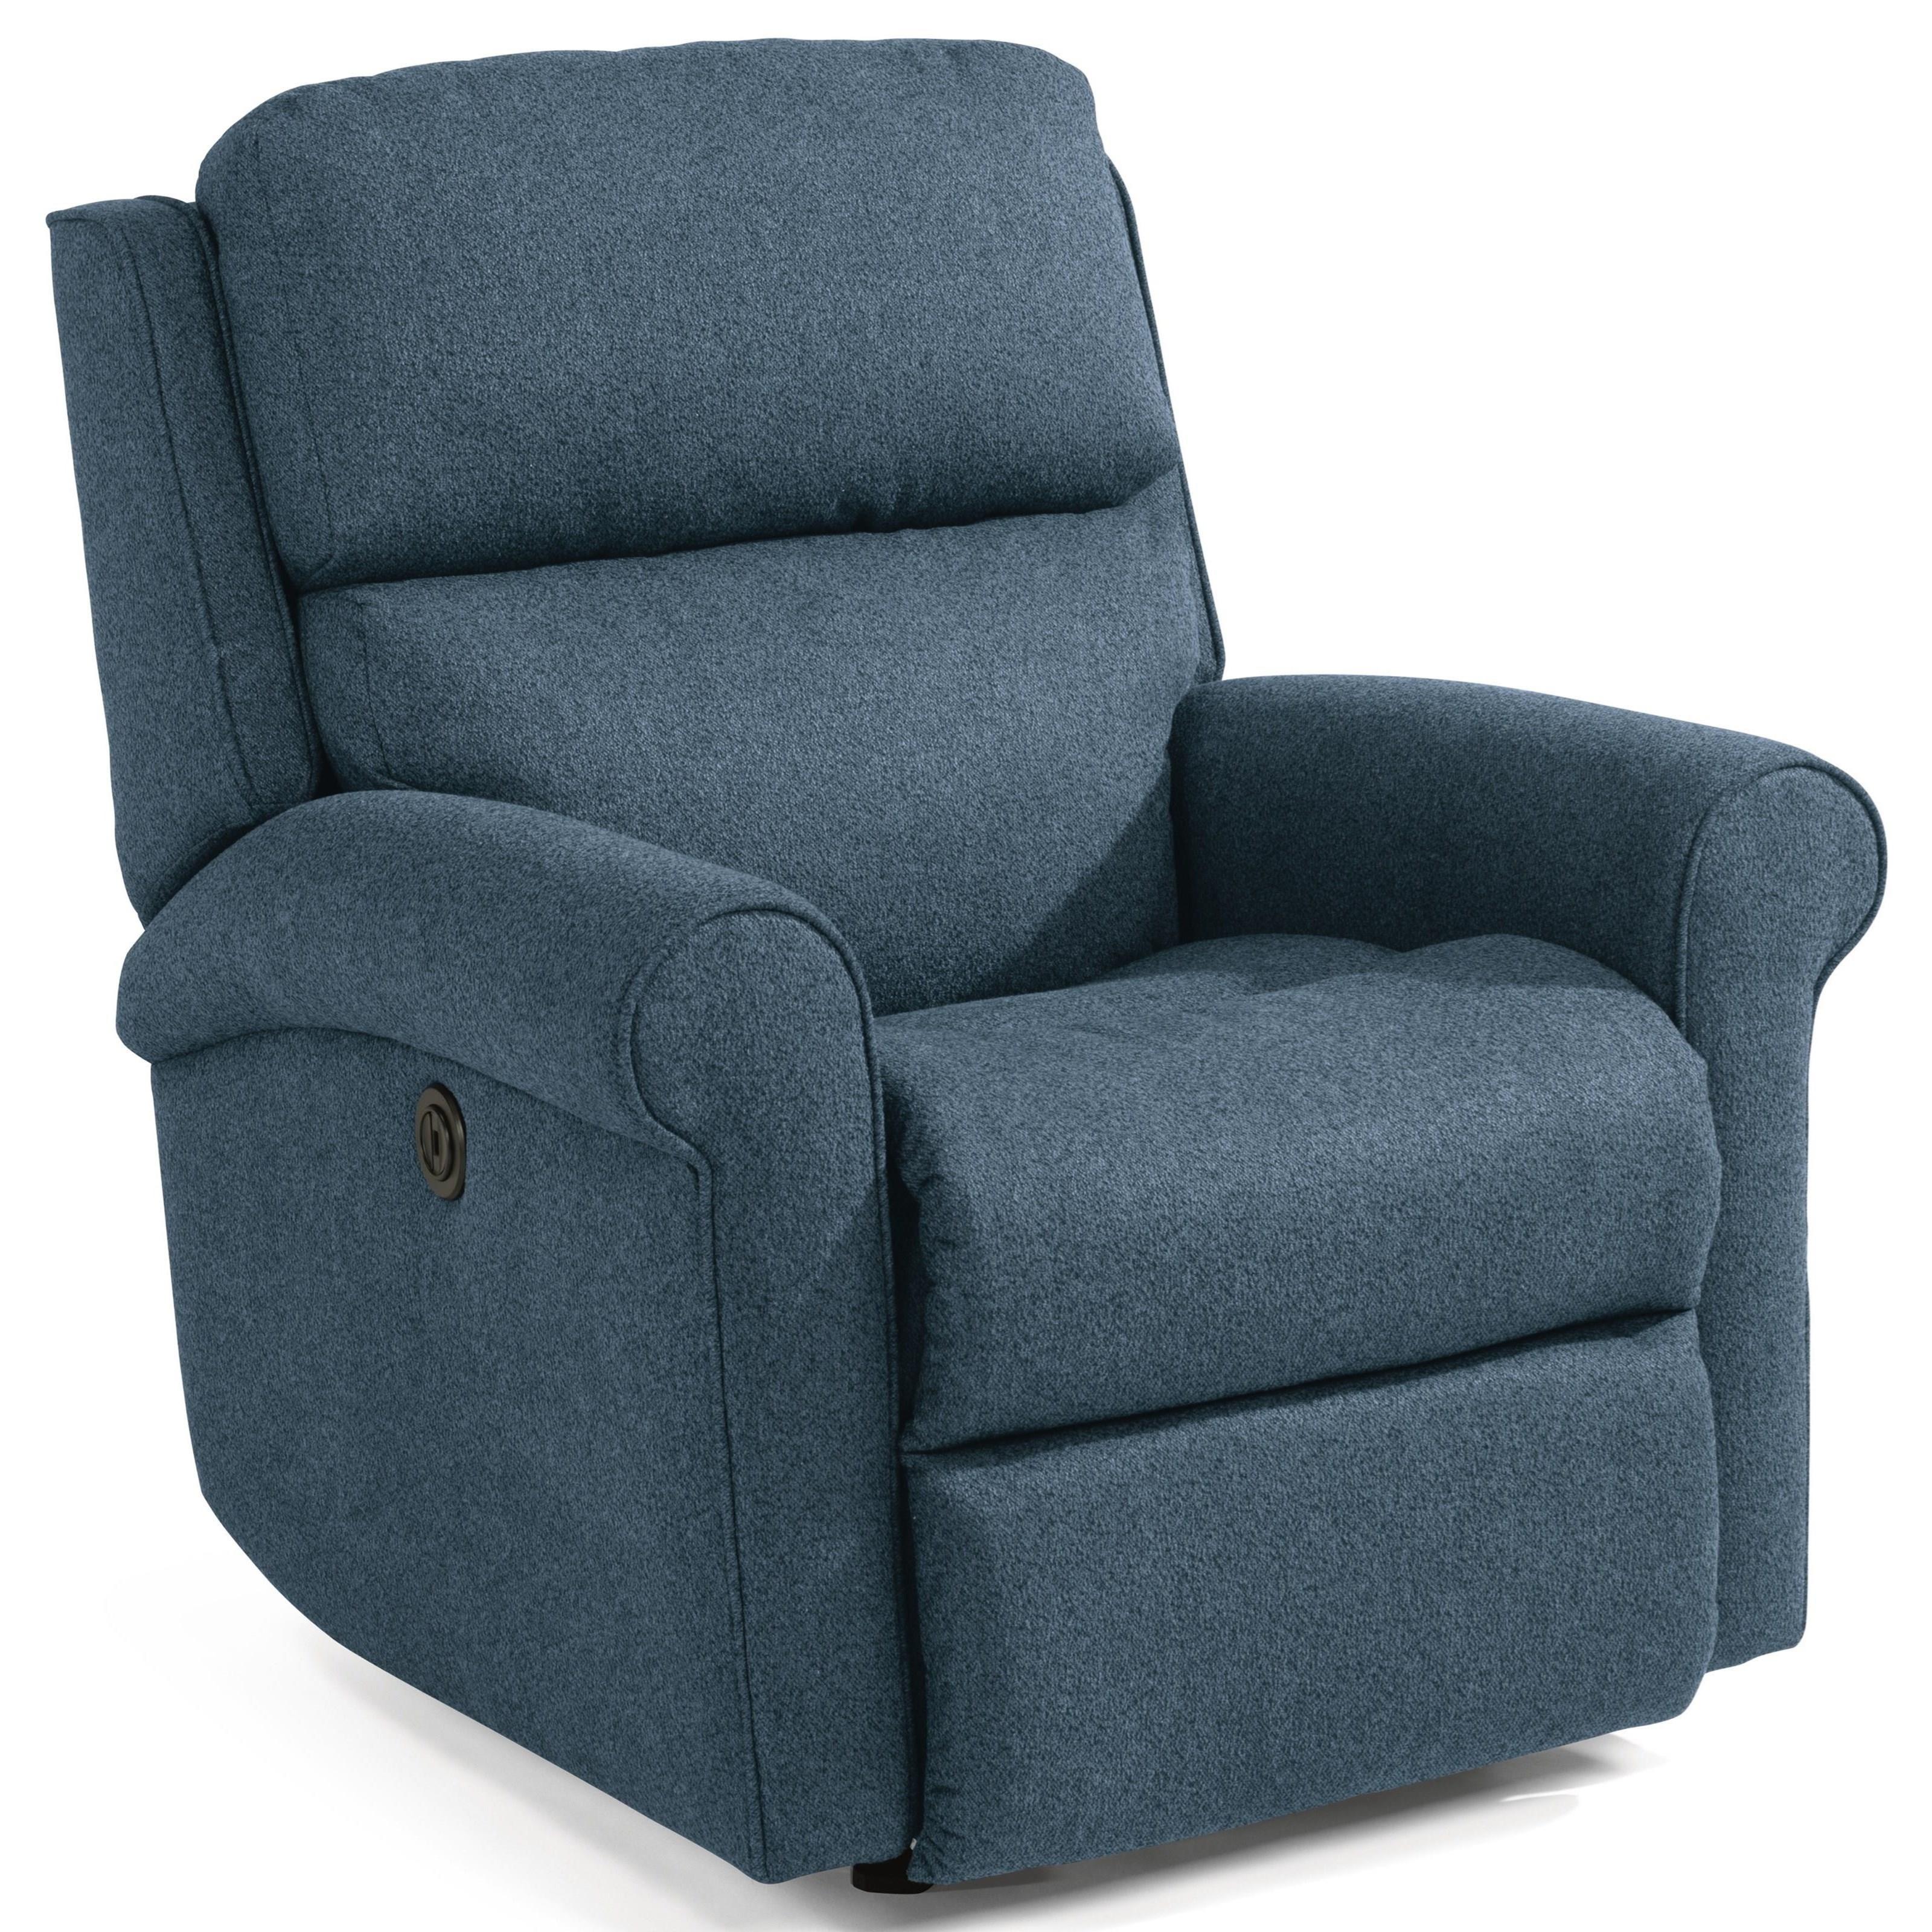 Belle Power Recliner  by Flexsteel at Crowley Furniture & Mattress